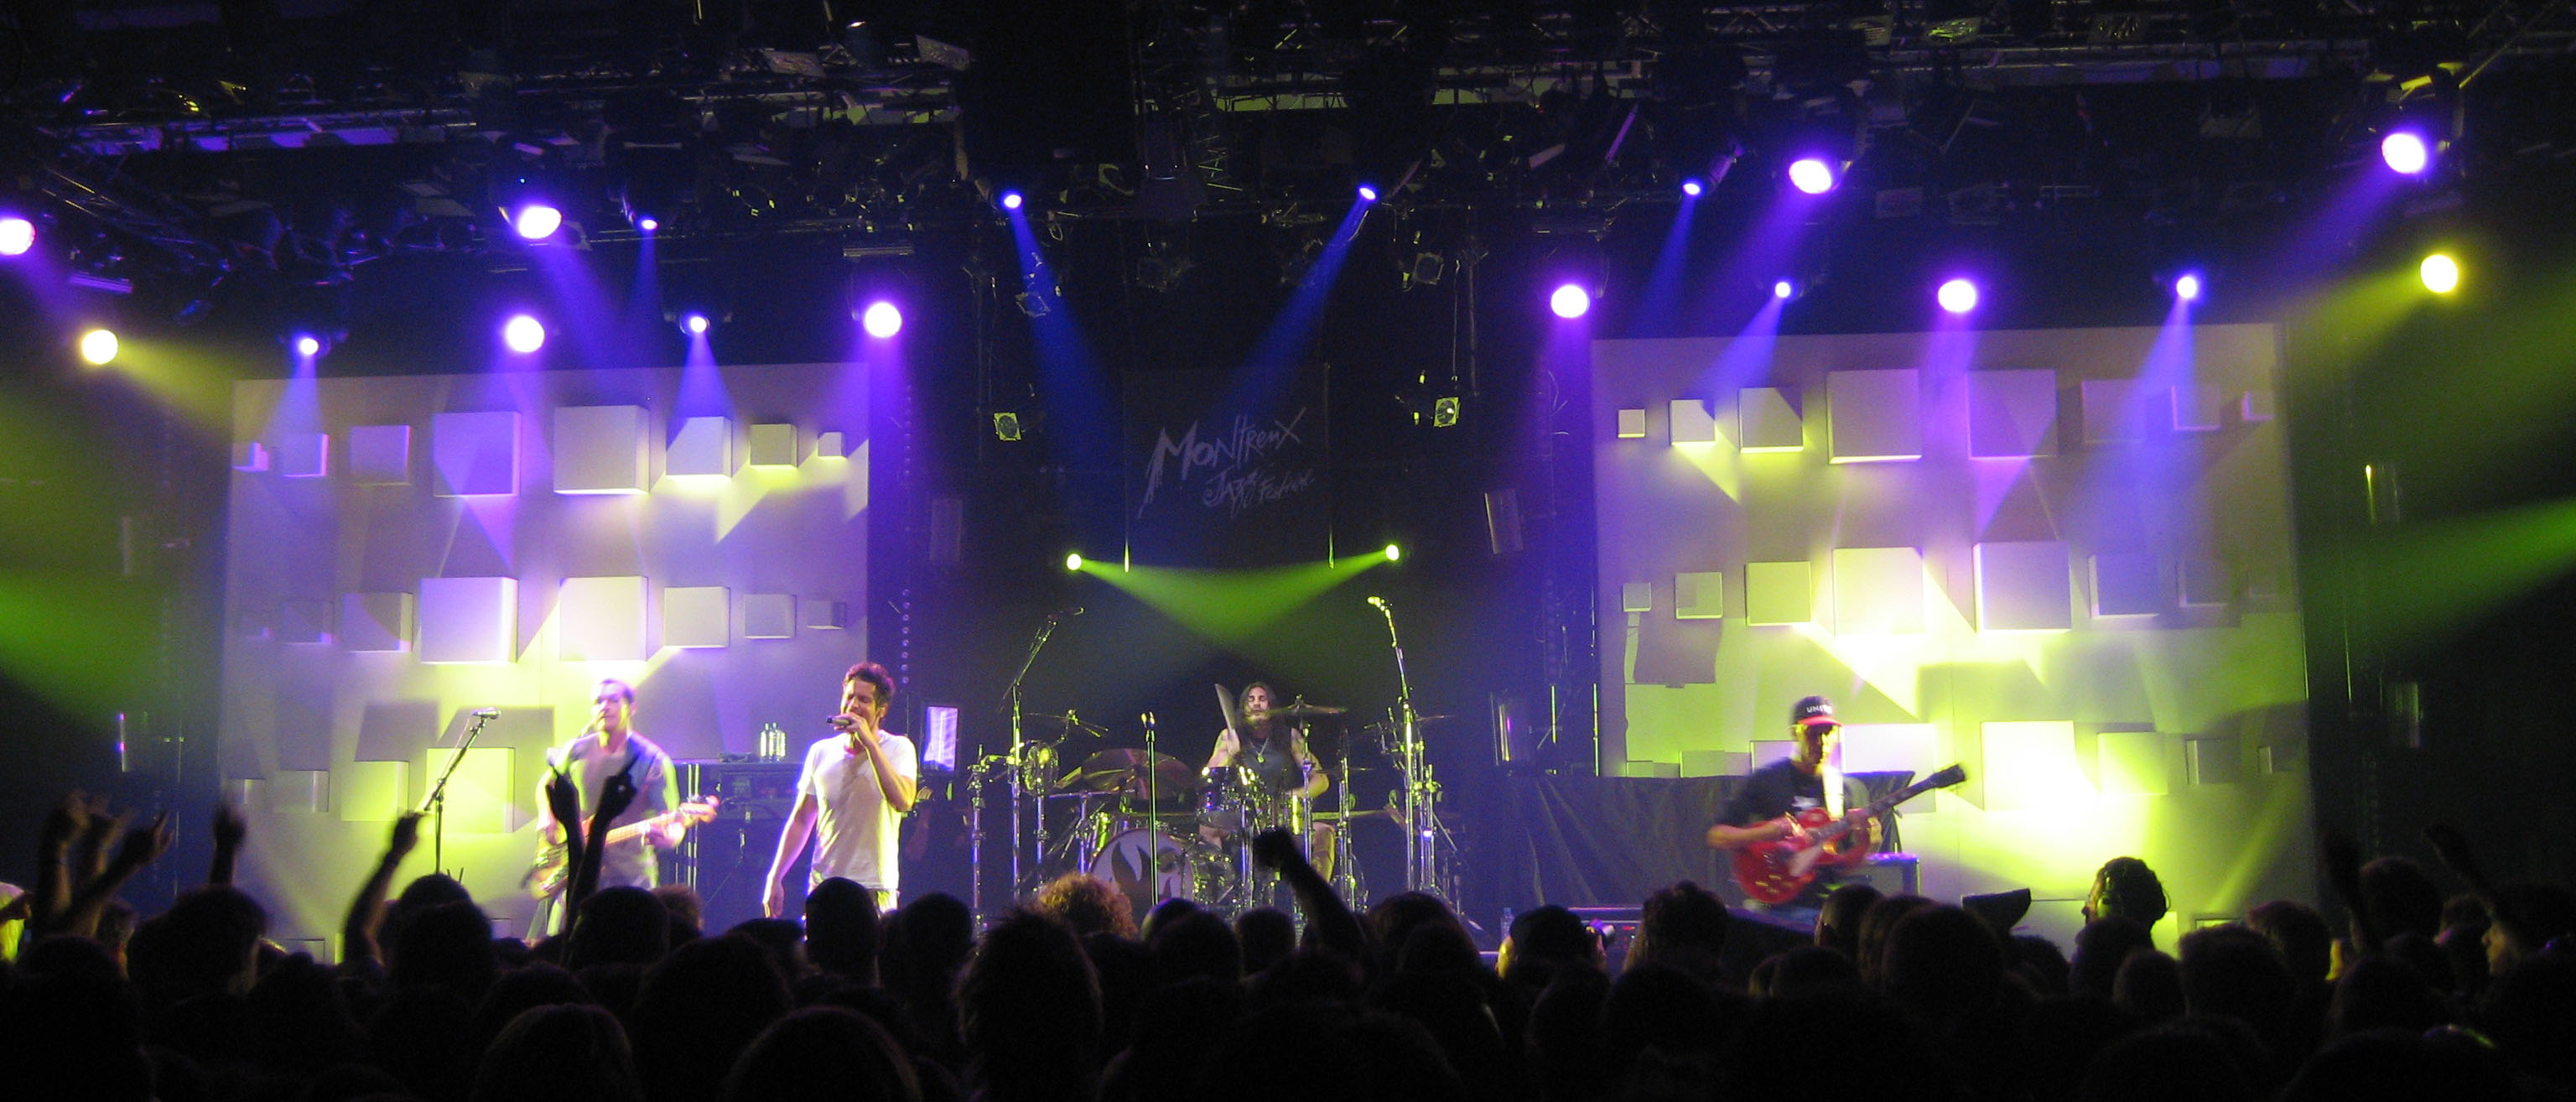 http://upload.wikimedia.org/wikipedia/commons/b/b5/Audioslave_2005.jpg